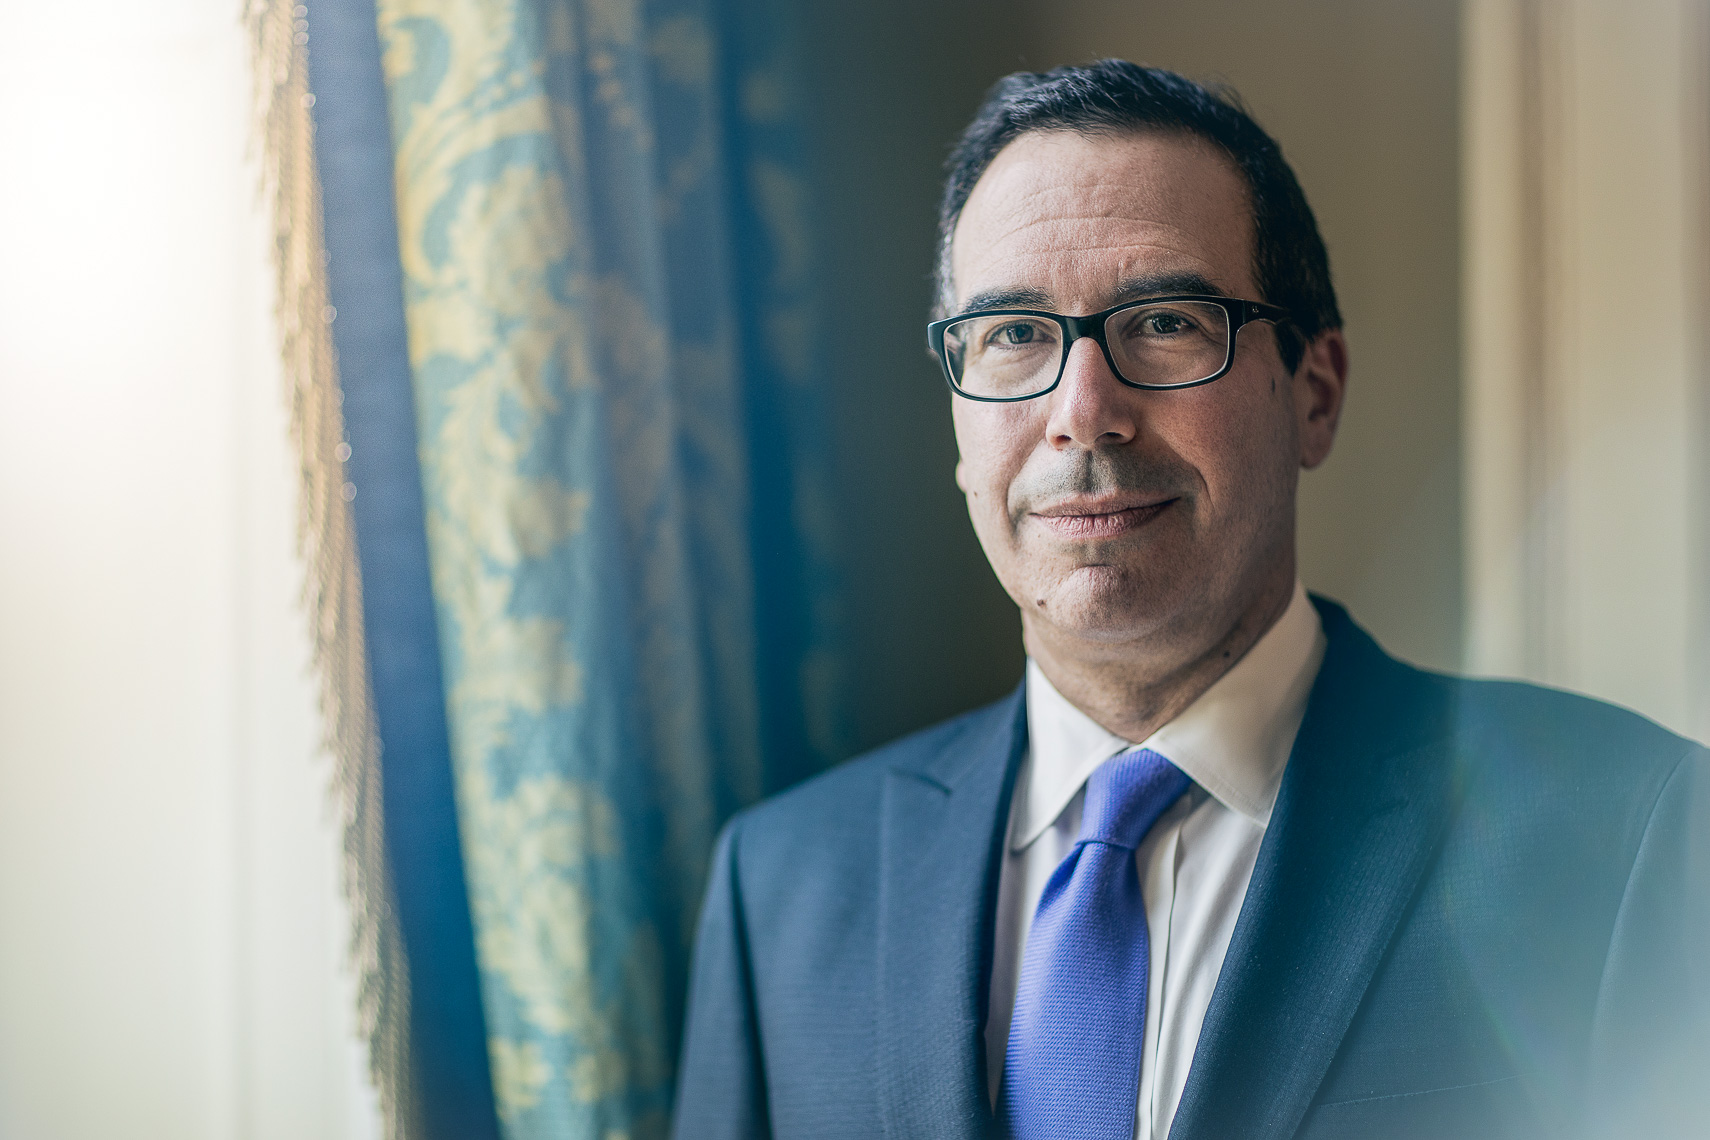 portrait14_ Donald Trump appointed United States Treasury Secretary Steven Mnuchin photos Baltimore Washington D.C. creative editorial portrait photographer based in Baltimore City editorial portraiture and lifestyle photography political photos politics